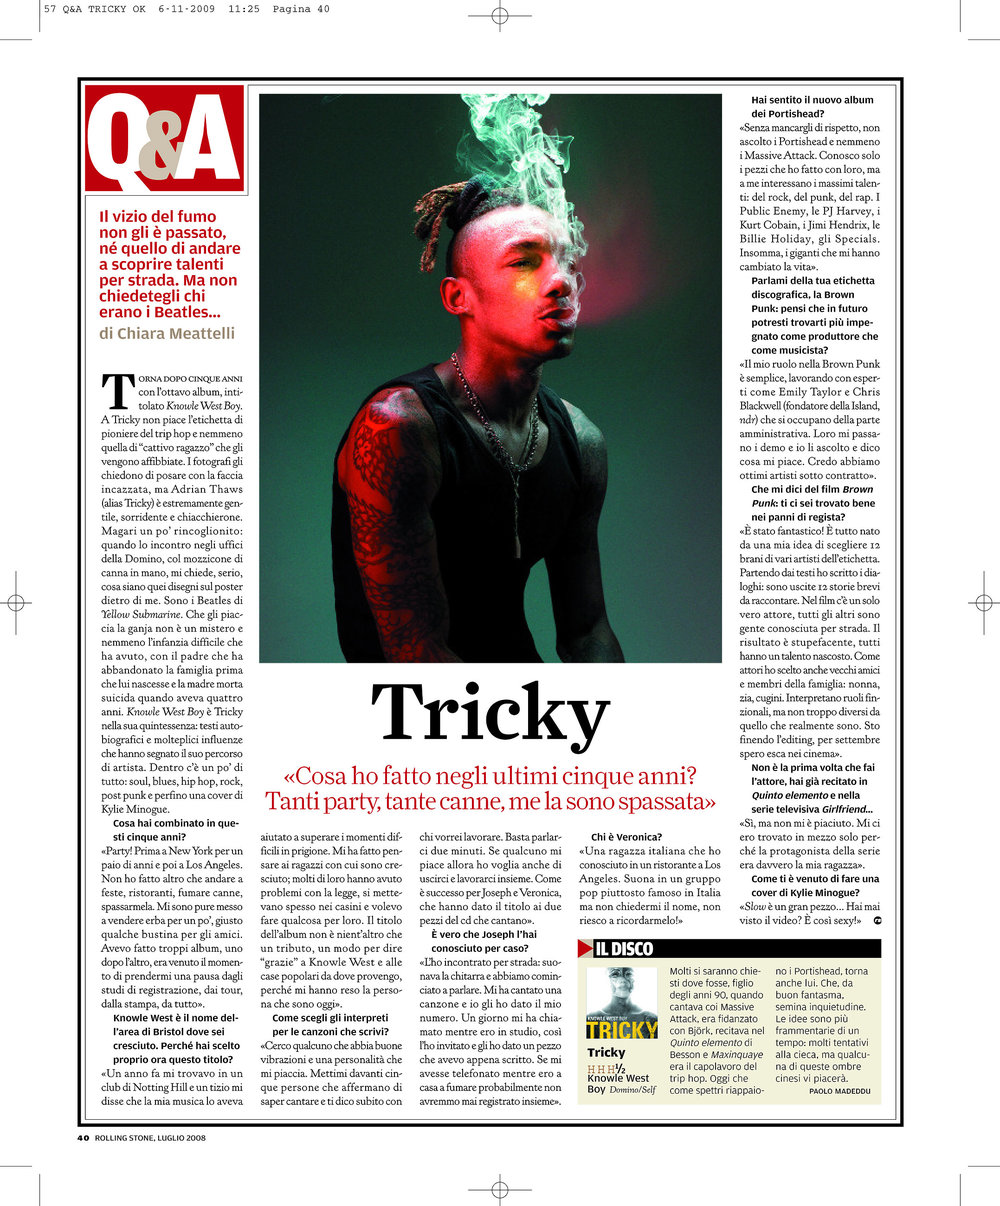 Rolling Stone: Tricky interview